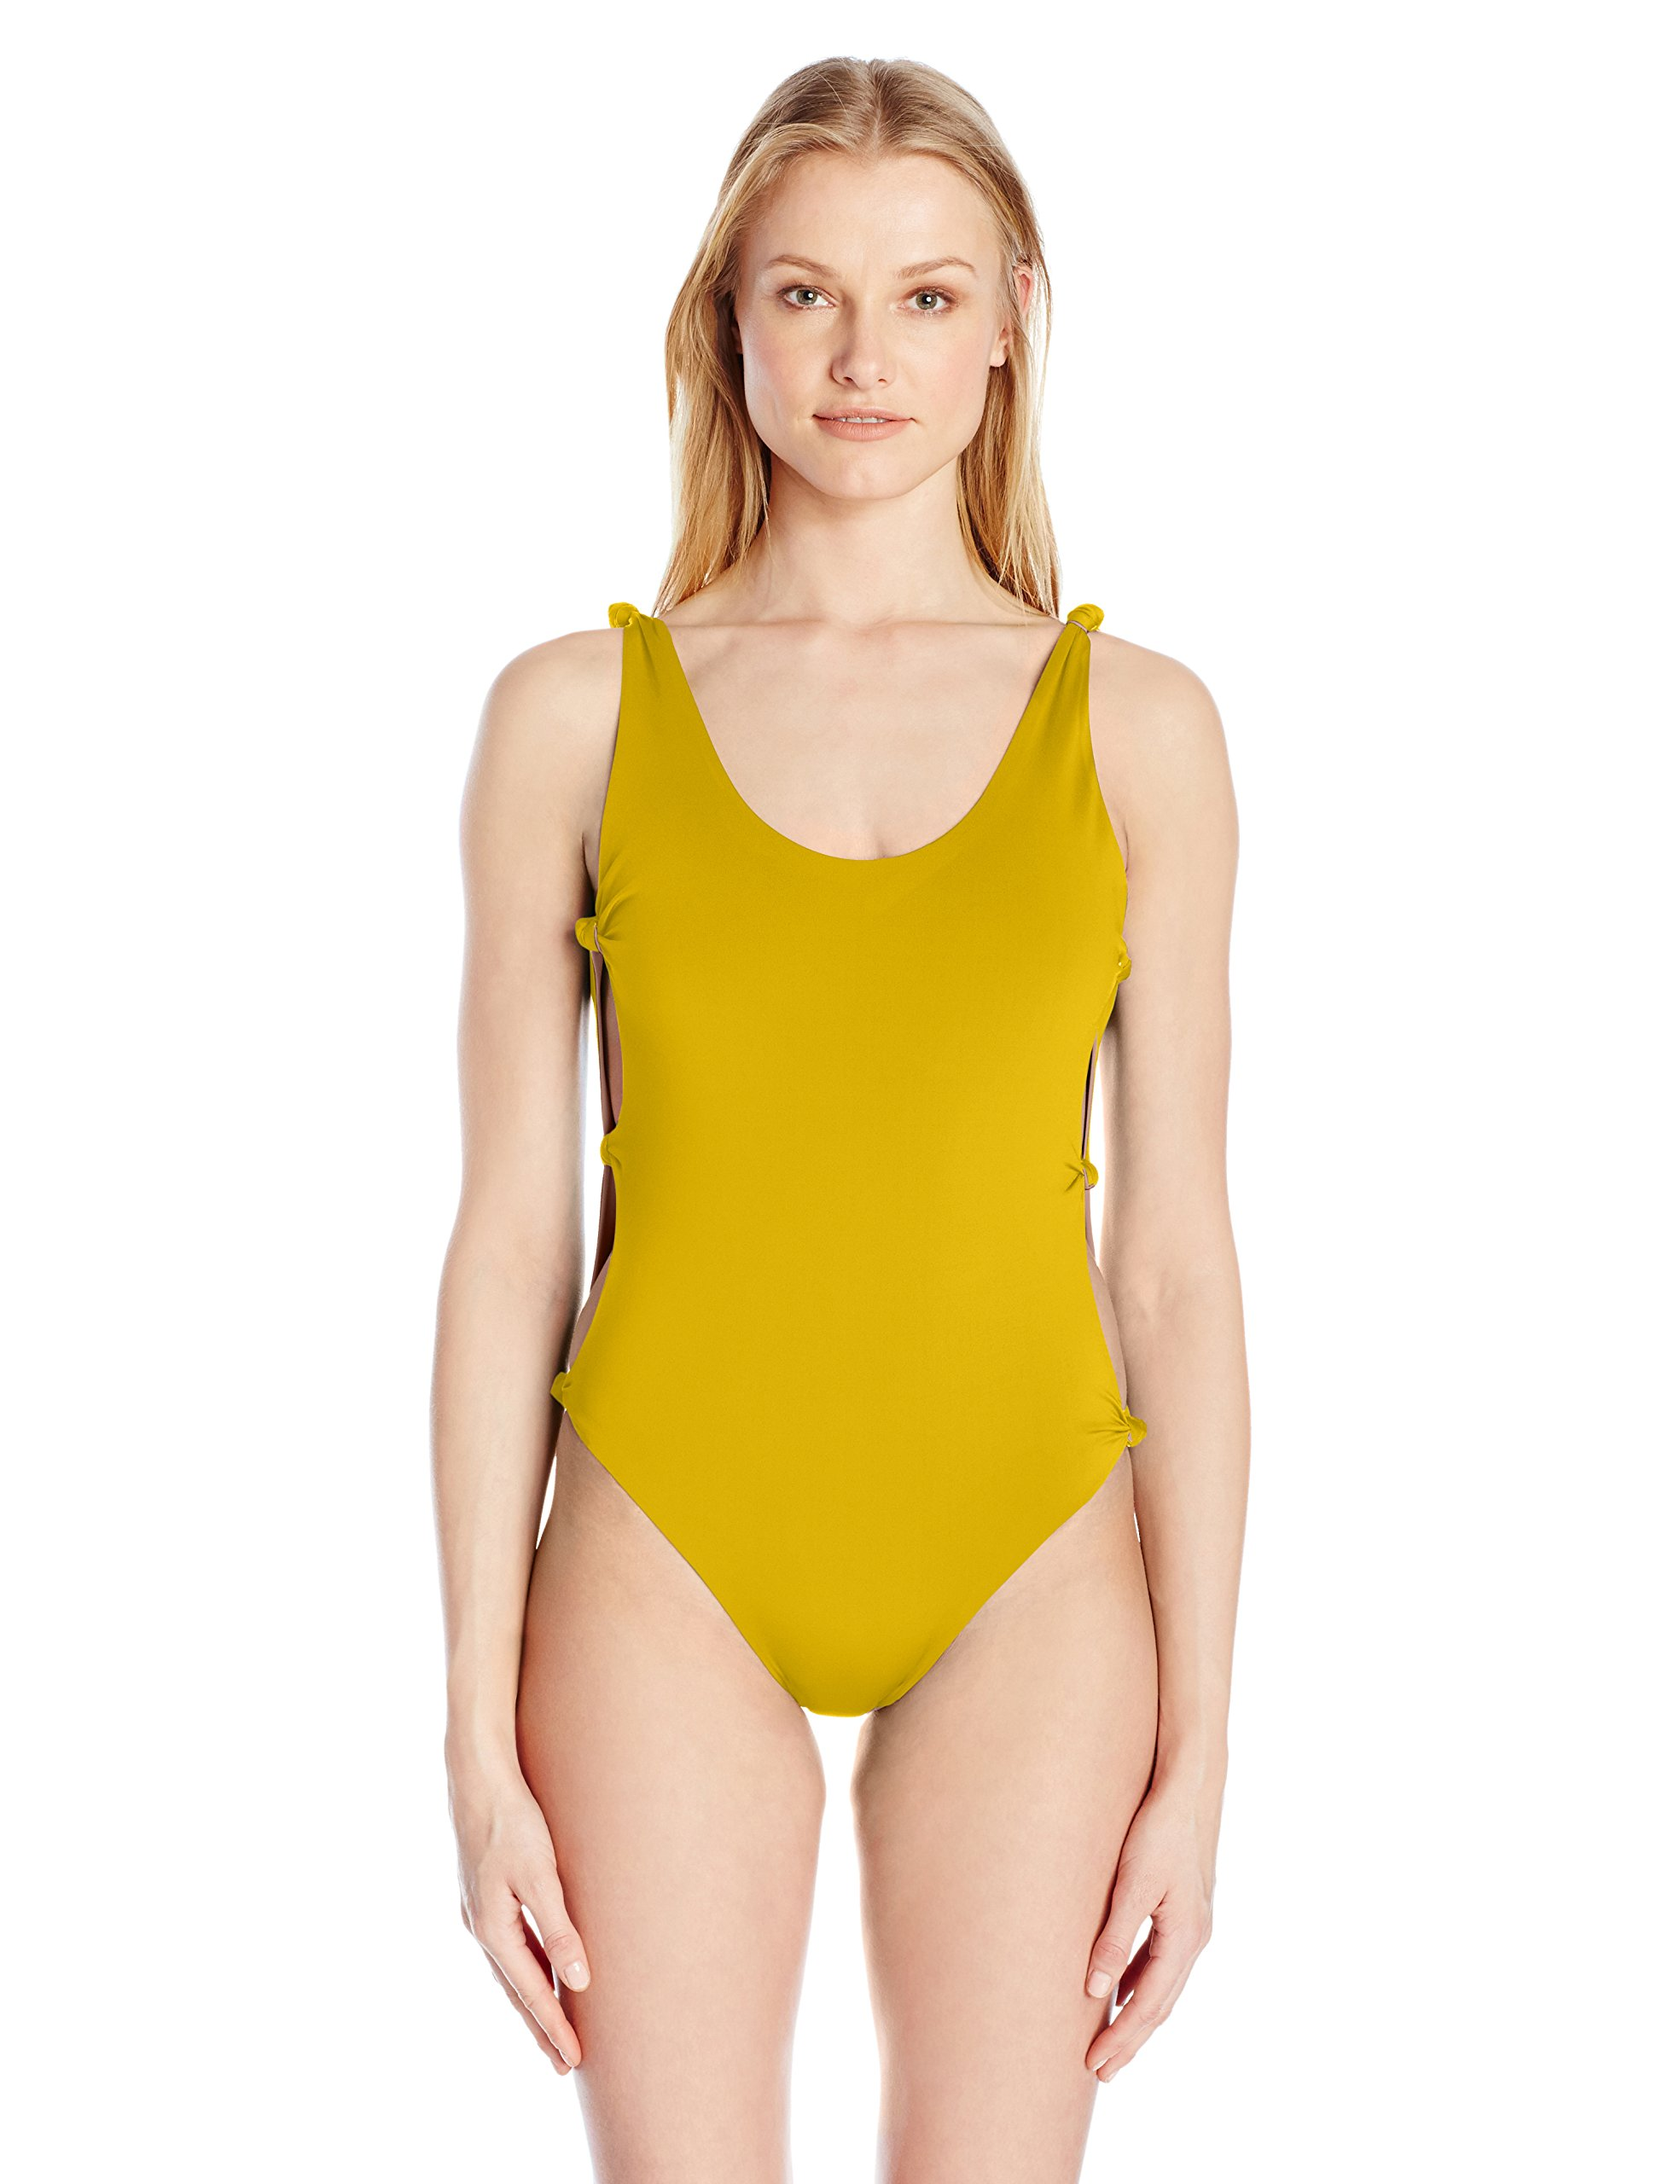 Red Carter Women's Indian Summer Reversible Solid Open-Side One Piece Swimsuit, Mustard/Indian Pink, M